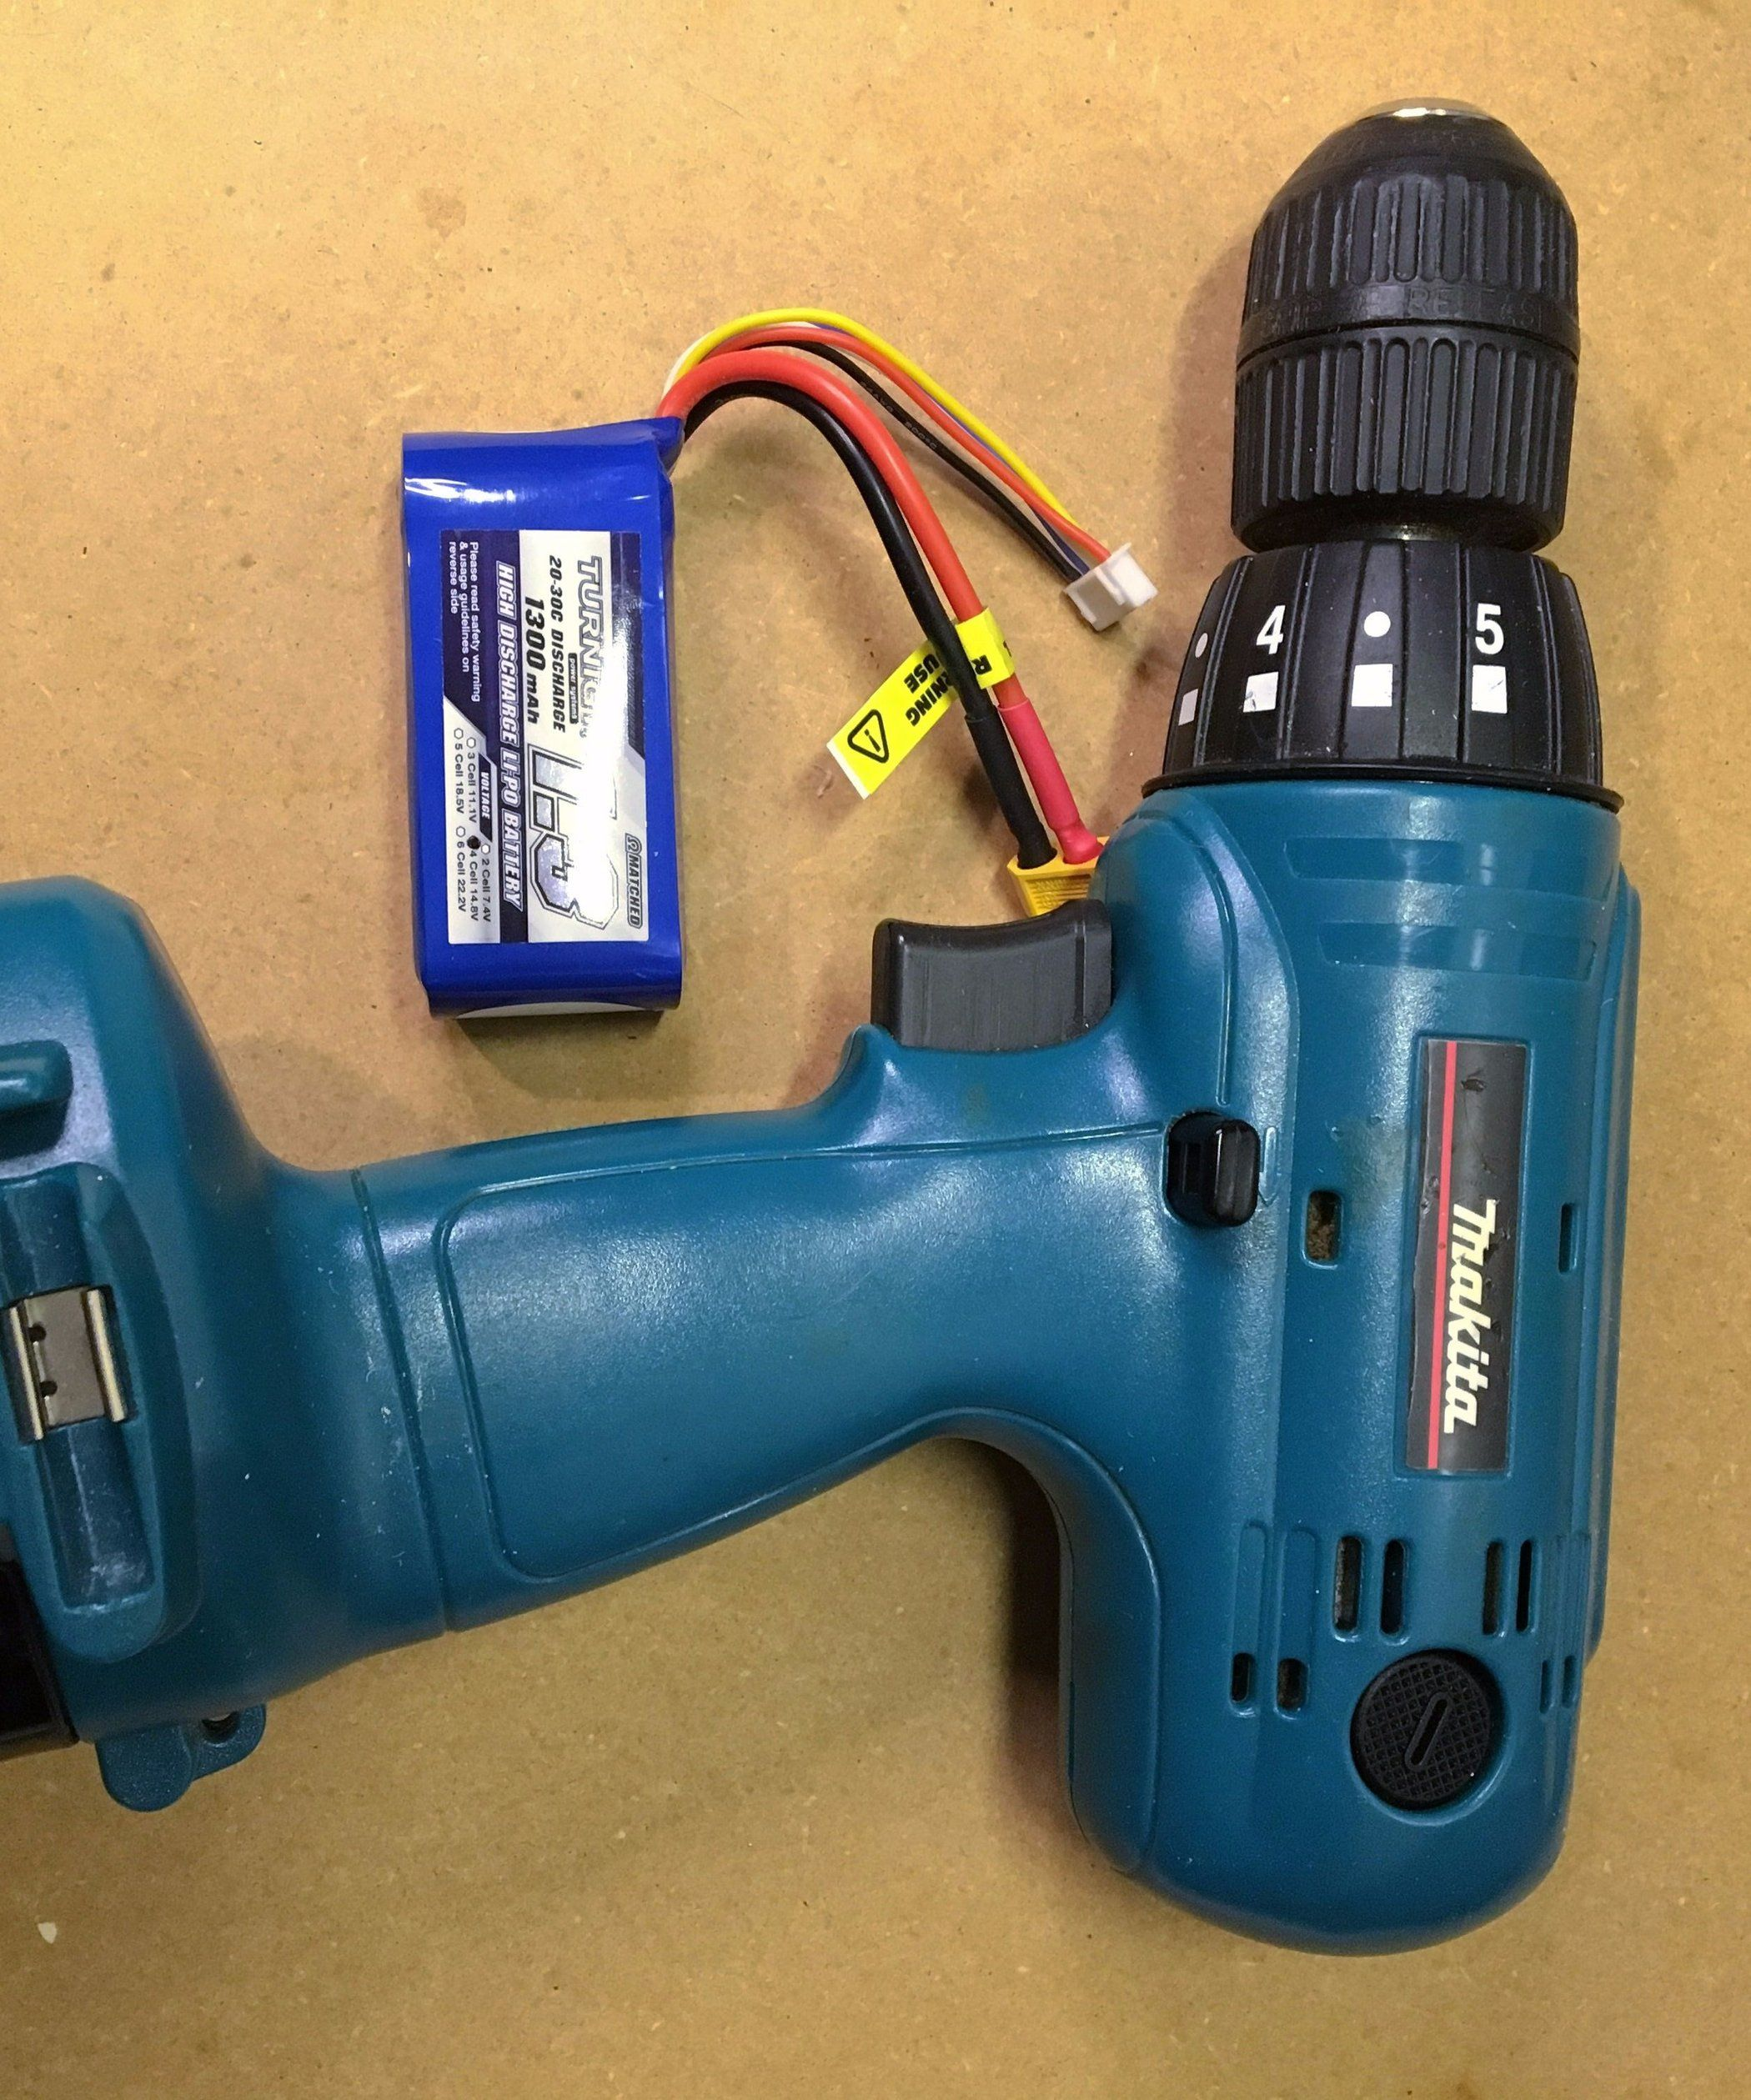 Convert Old Cordless Tools To Lithium Power Cordless Tools Cordless Drill Batteries Cordless Drill